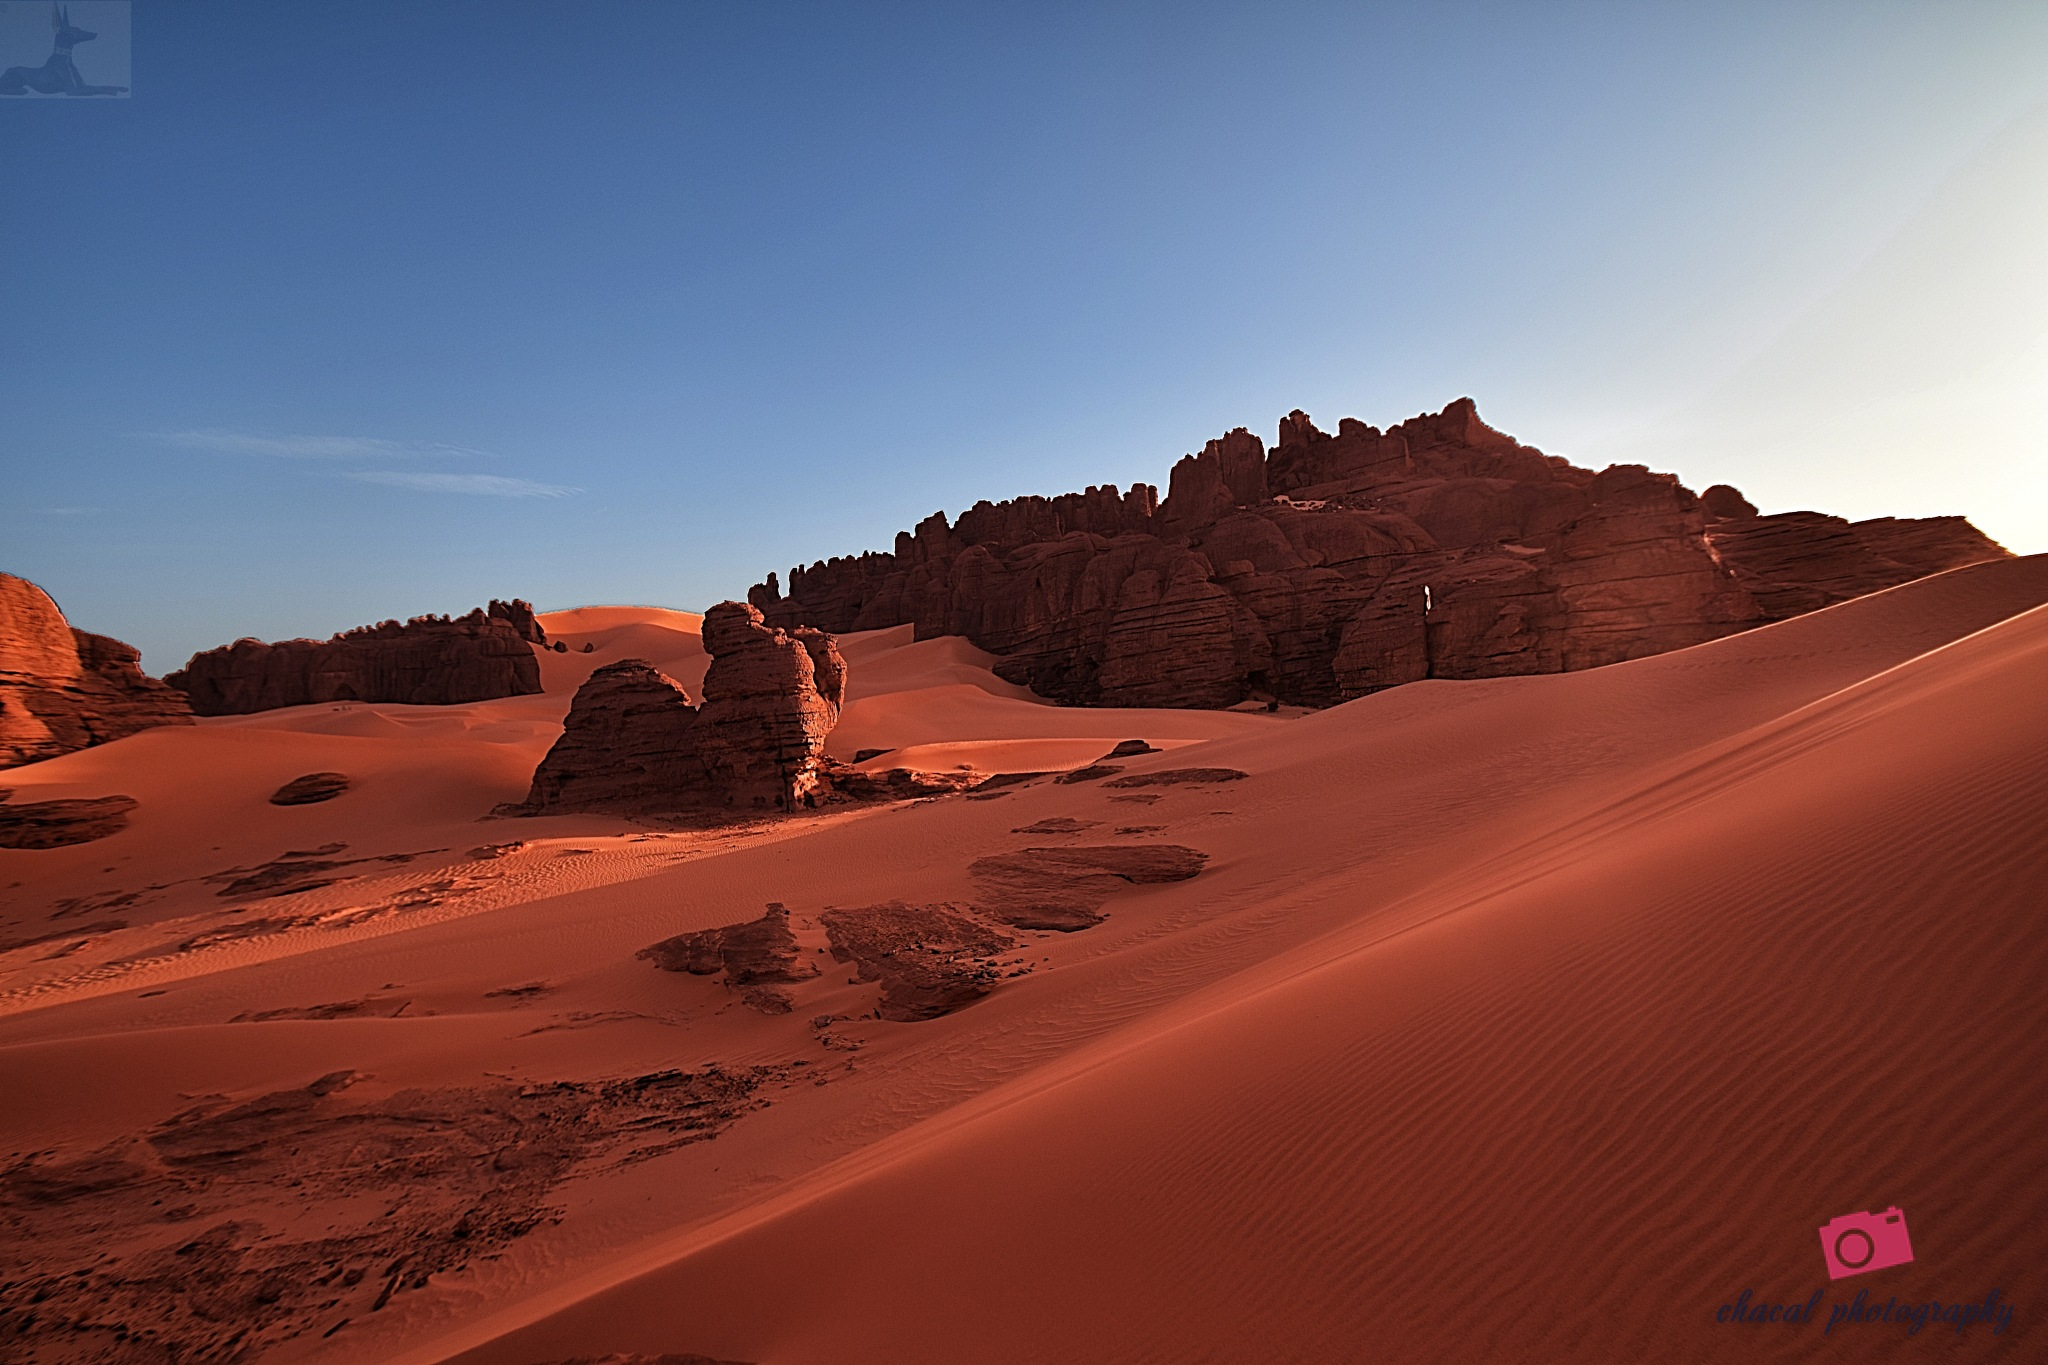 From the heart of the Sahara Algeria by chacal photography